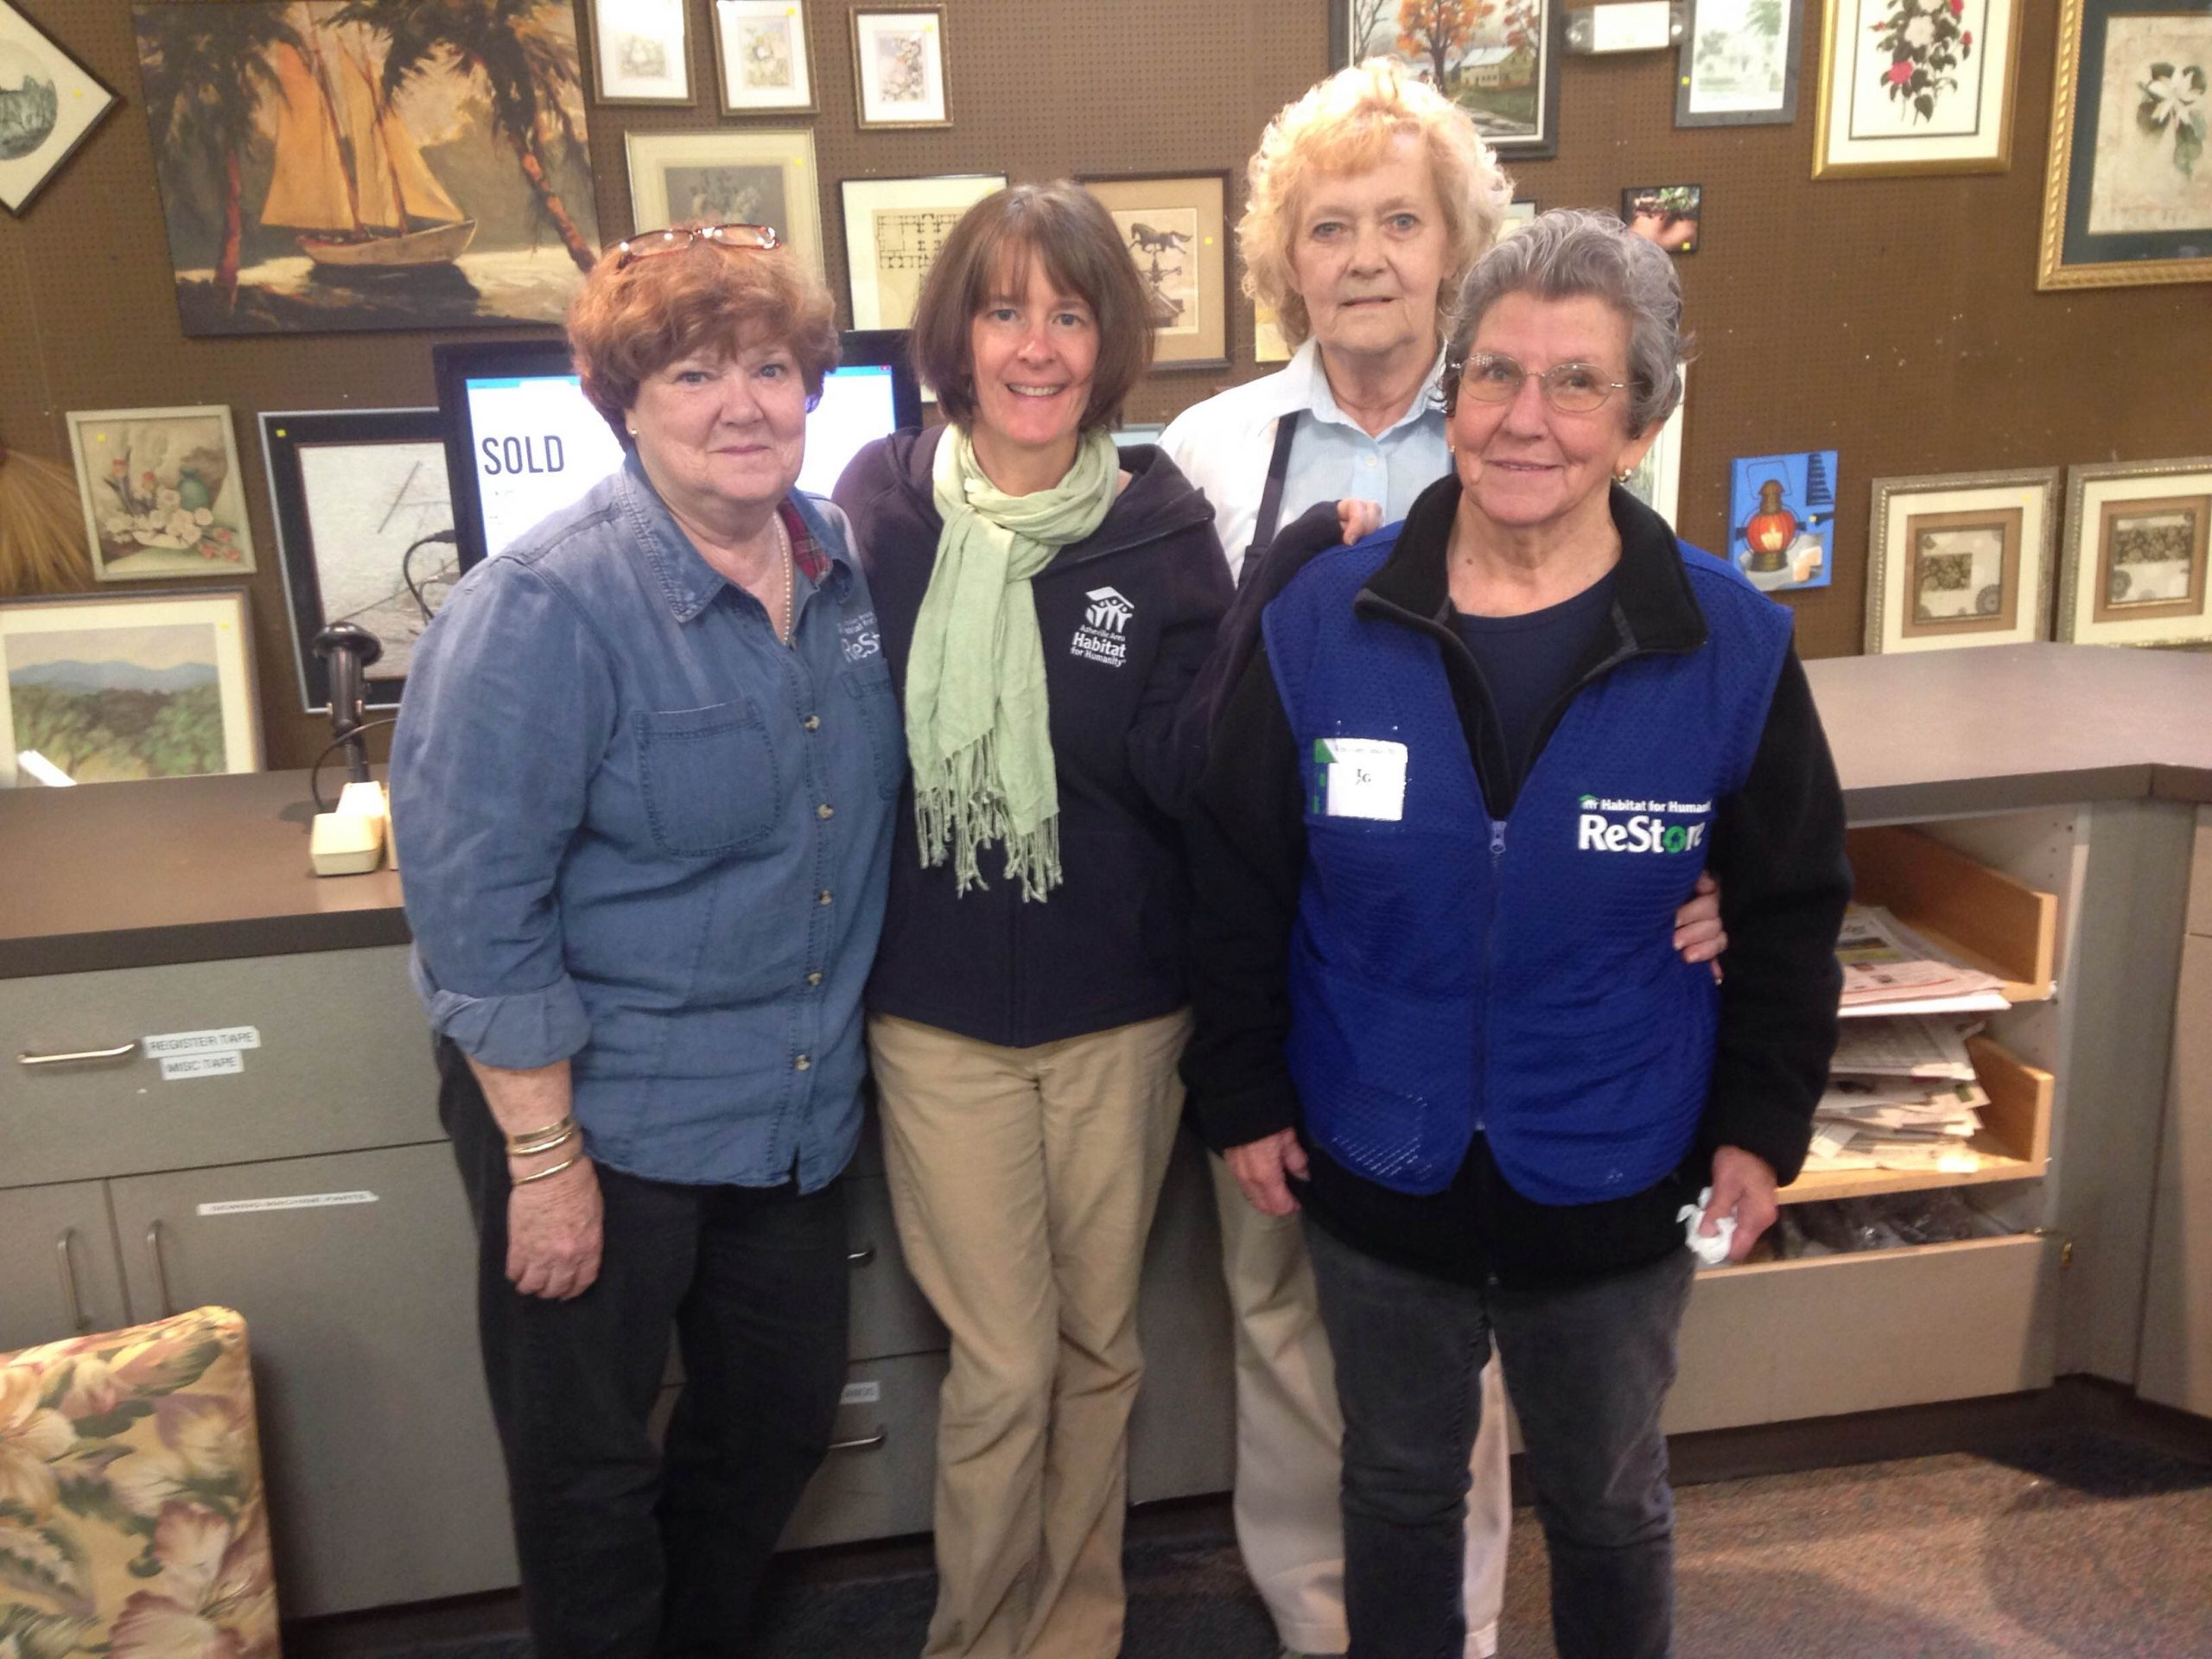 Carolyn with other ReStore volunteers and Volunteer Coordinator Carrie.